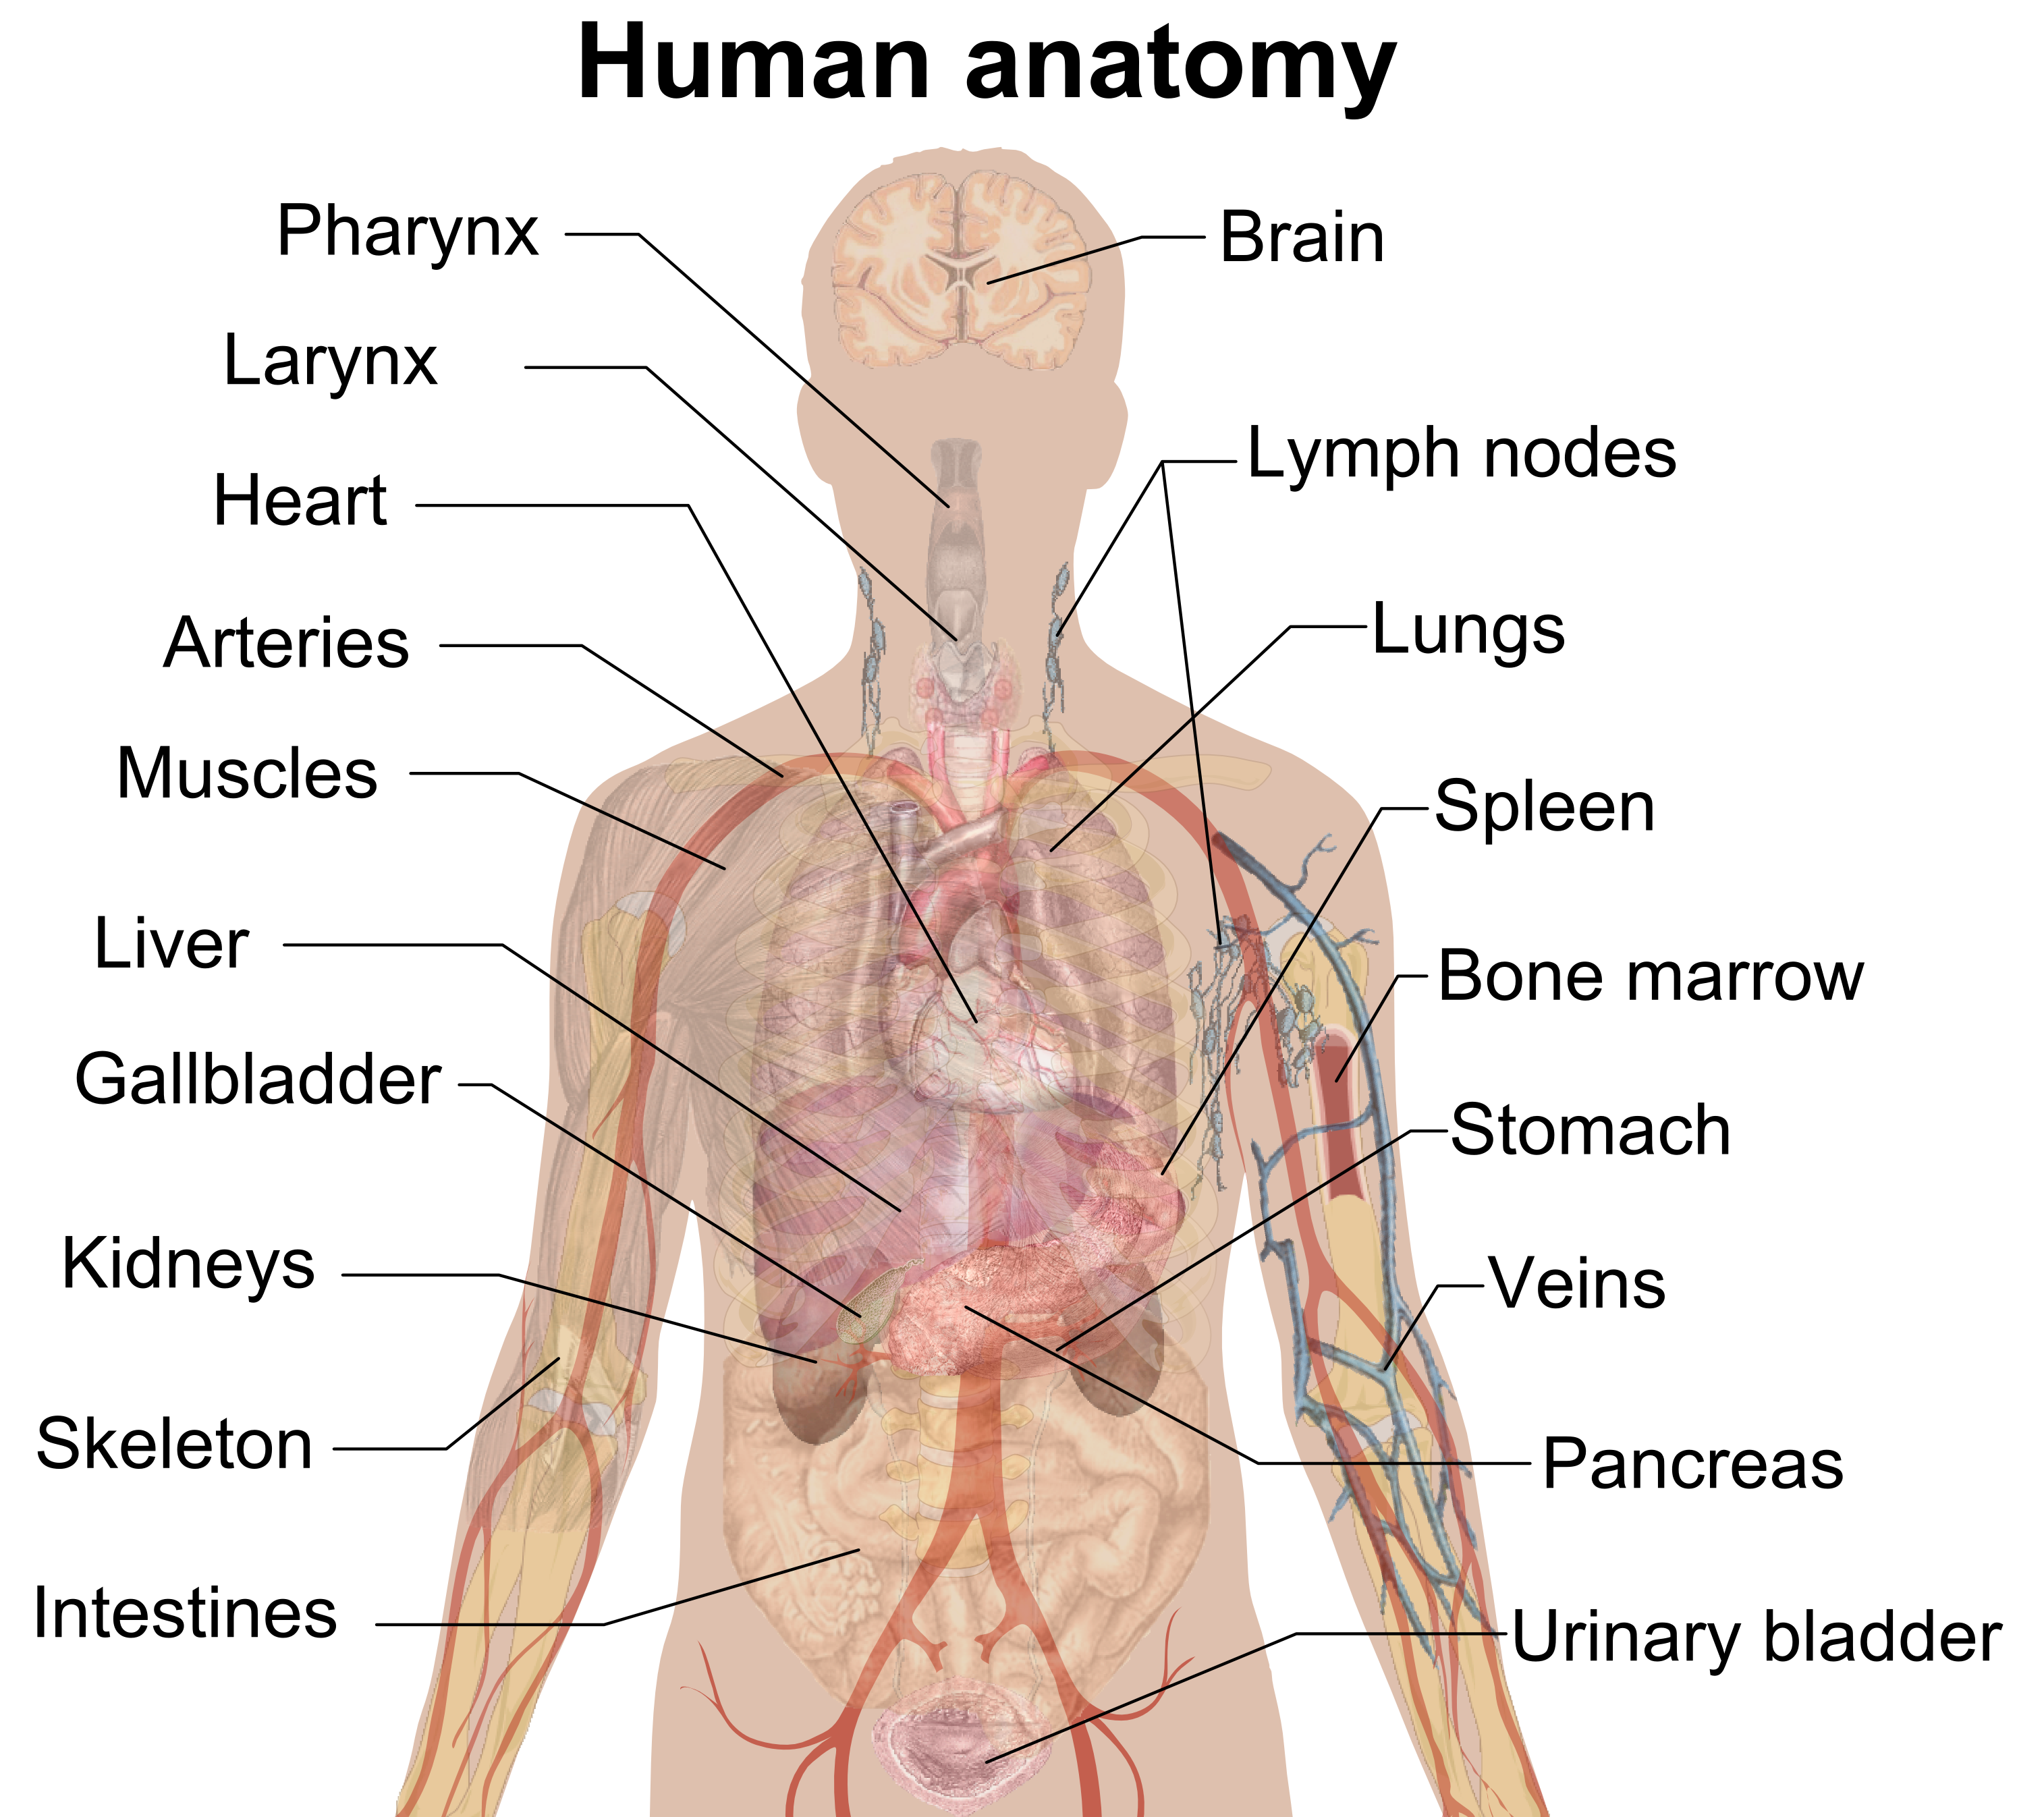 Liver clipart anatomy. File man shadow png